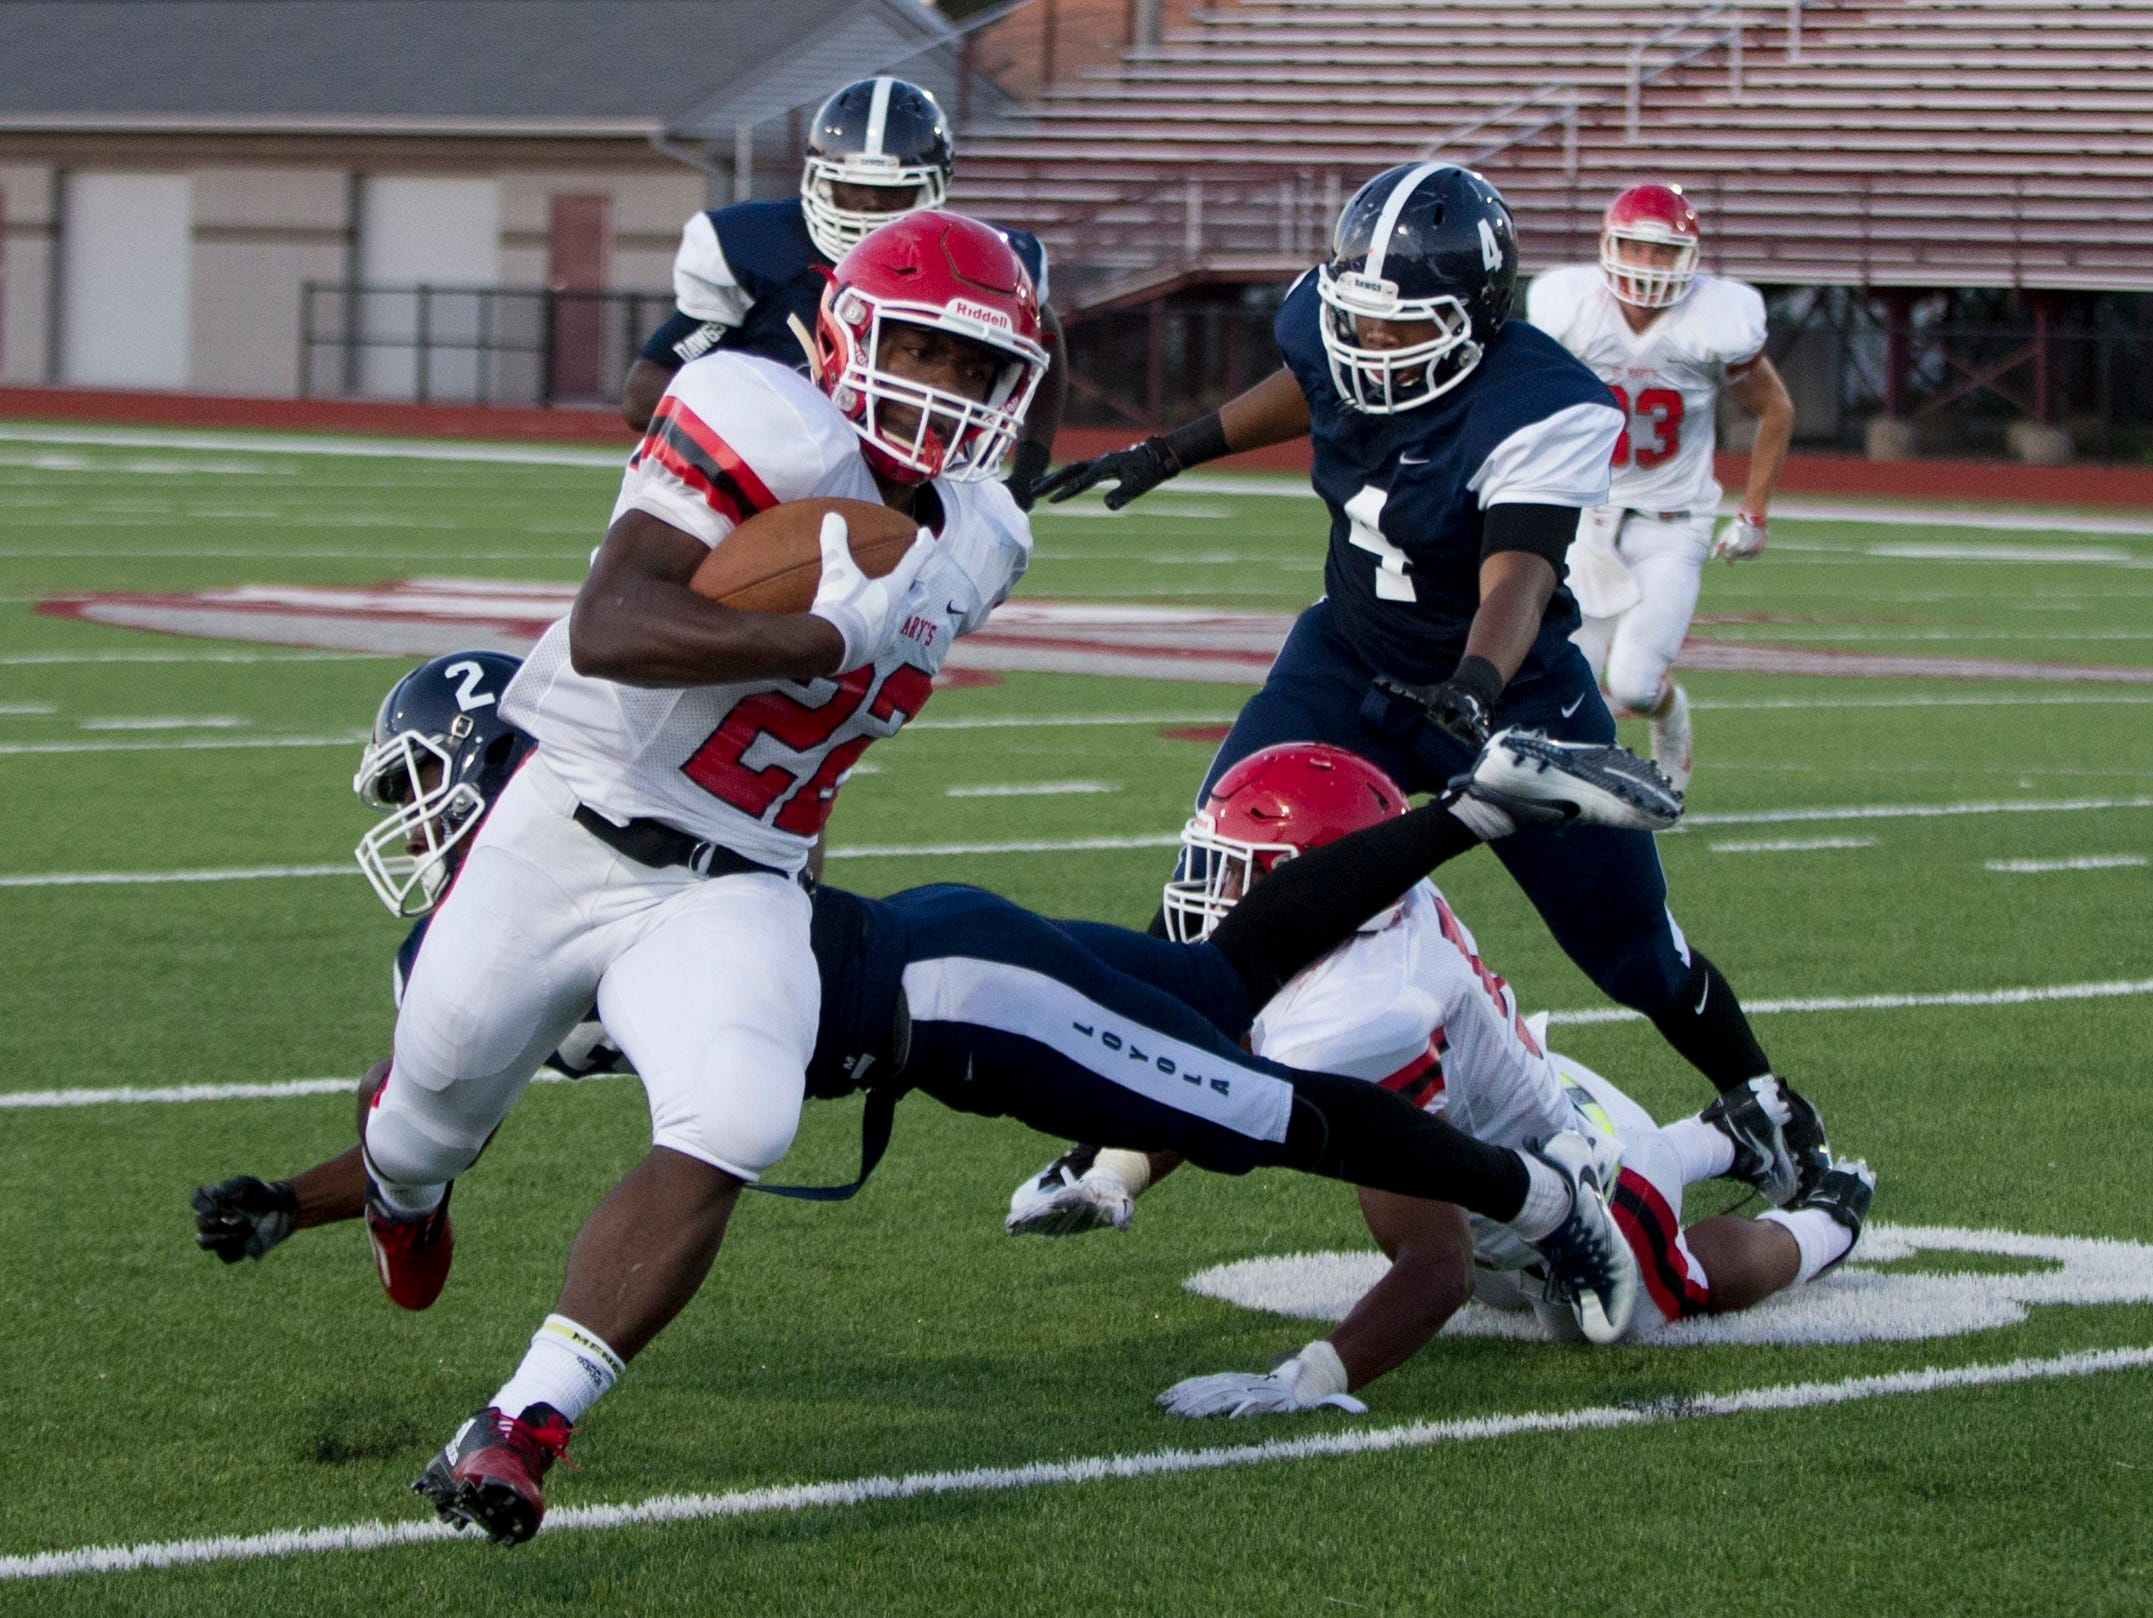 Orchard Lake St. Mary's running back RaShawn Allen dodges a tackle attempt from Detroit Loyola's Price Watkins during St. Mary's 35-14 win Friday at Hazel Park.